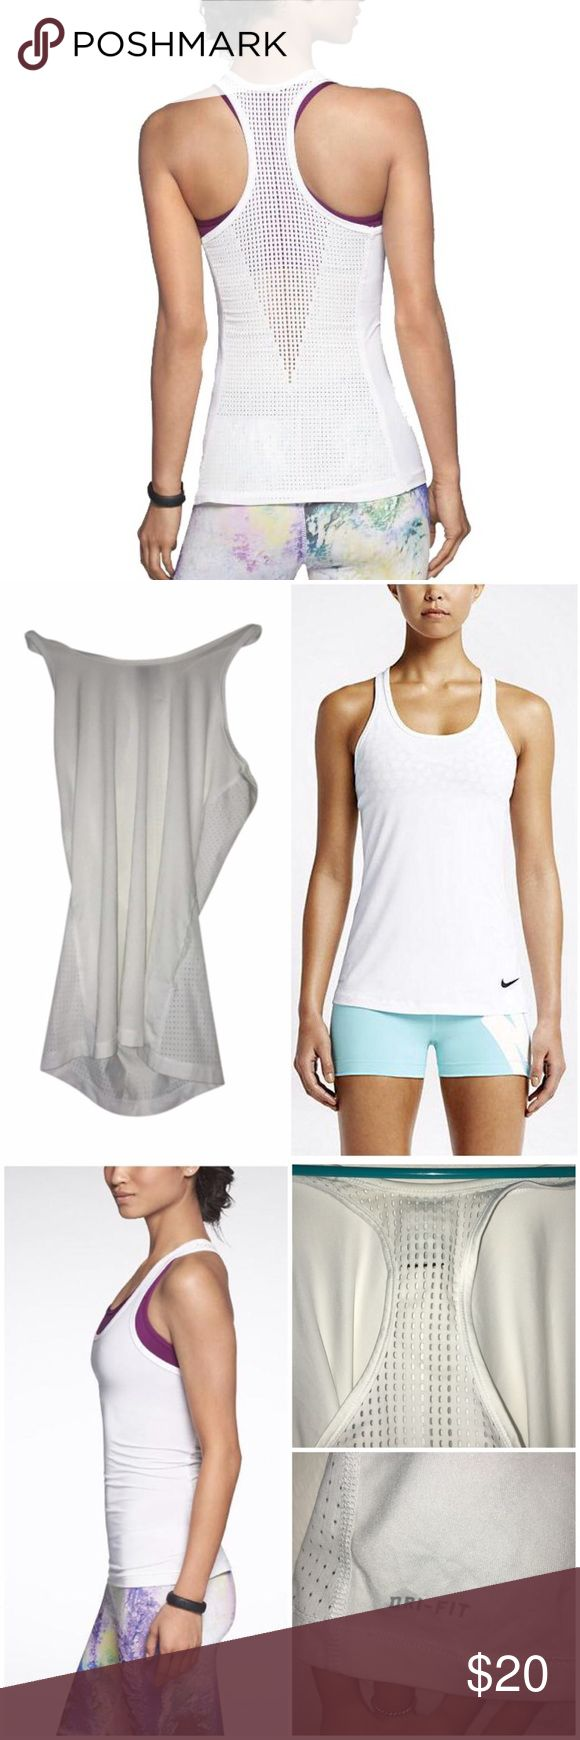 Nike Pro Hypercool Tank Top A mesh back with a perforated V-shaped panel offers increased airflow and breathability as you heat up during a workout. Whether you're out for a run or at sports practice, the Nike Pro Hypercool Tank Top is essential for your active lifestyle. Mesh: Dri-FIT 100% polyester. It'll make you stand out.  Worn once! Minor color fade at neck. Make me an offer!  This Nike Pro Hypercool Tank Top provides you active wardrobe with energetic style. Fabric: Body: Dri-FIT 92%…